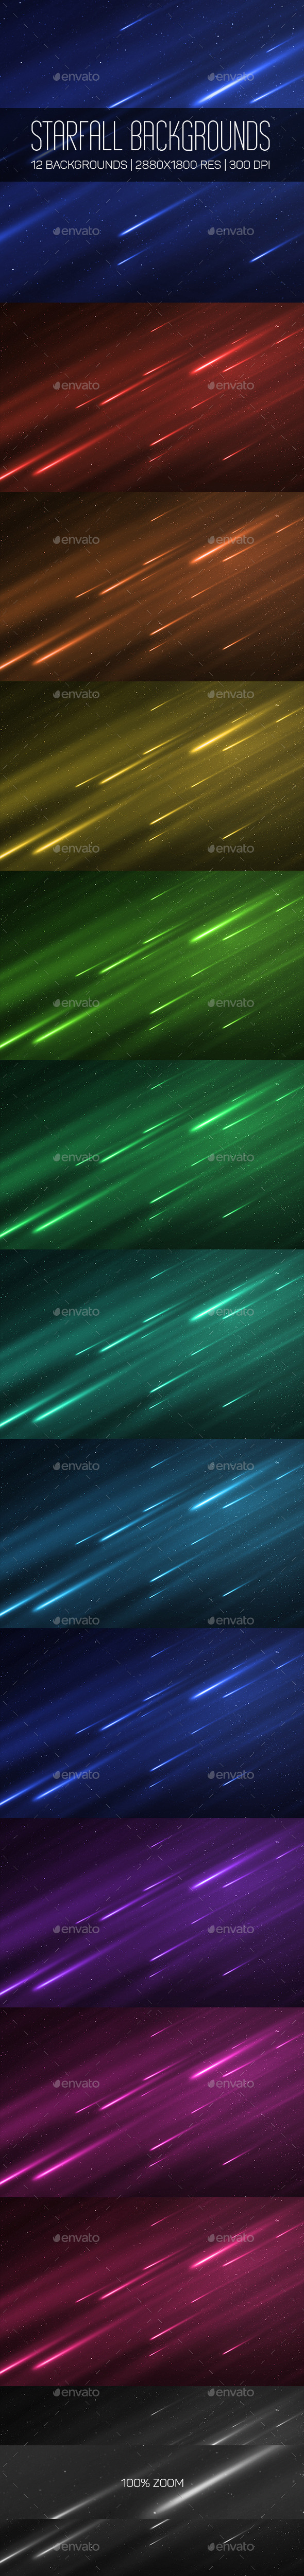 Starfall Backgrounds - Abstract Backgrounds